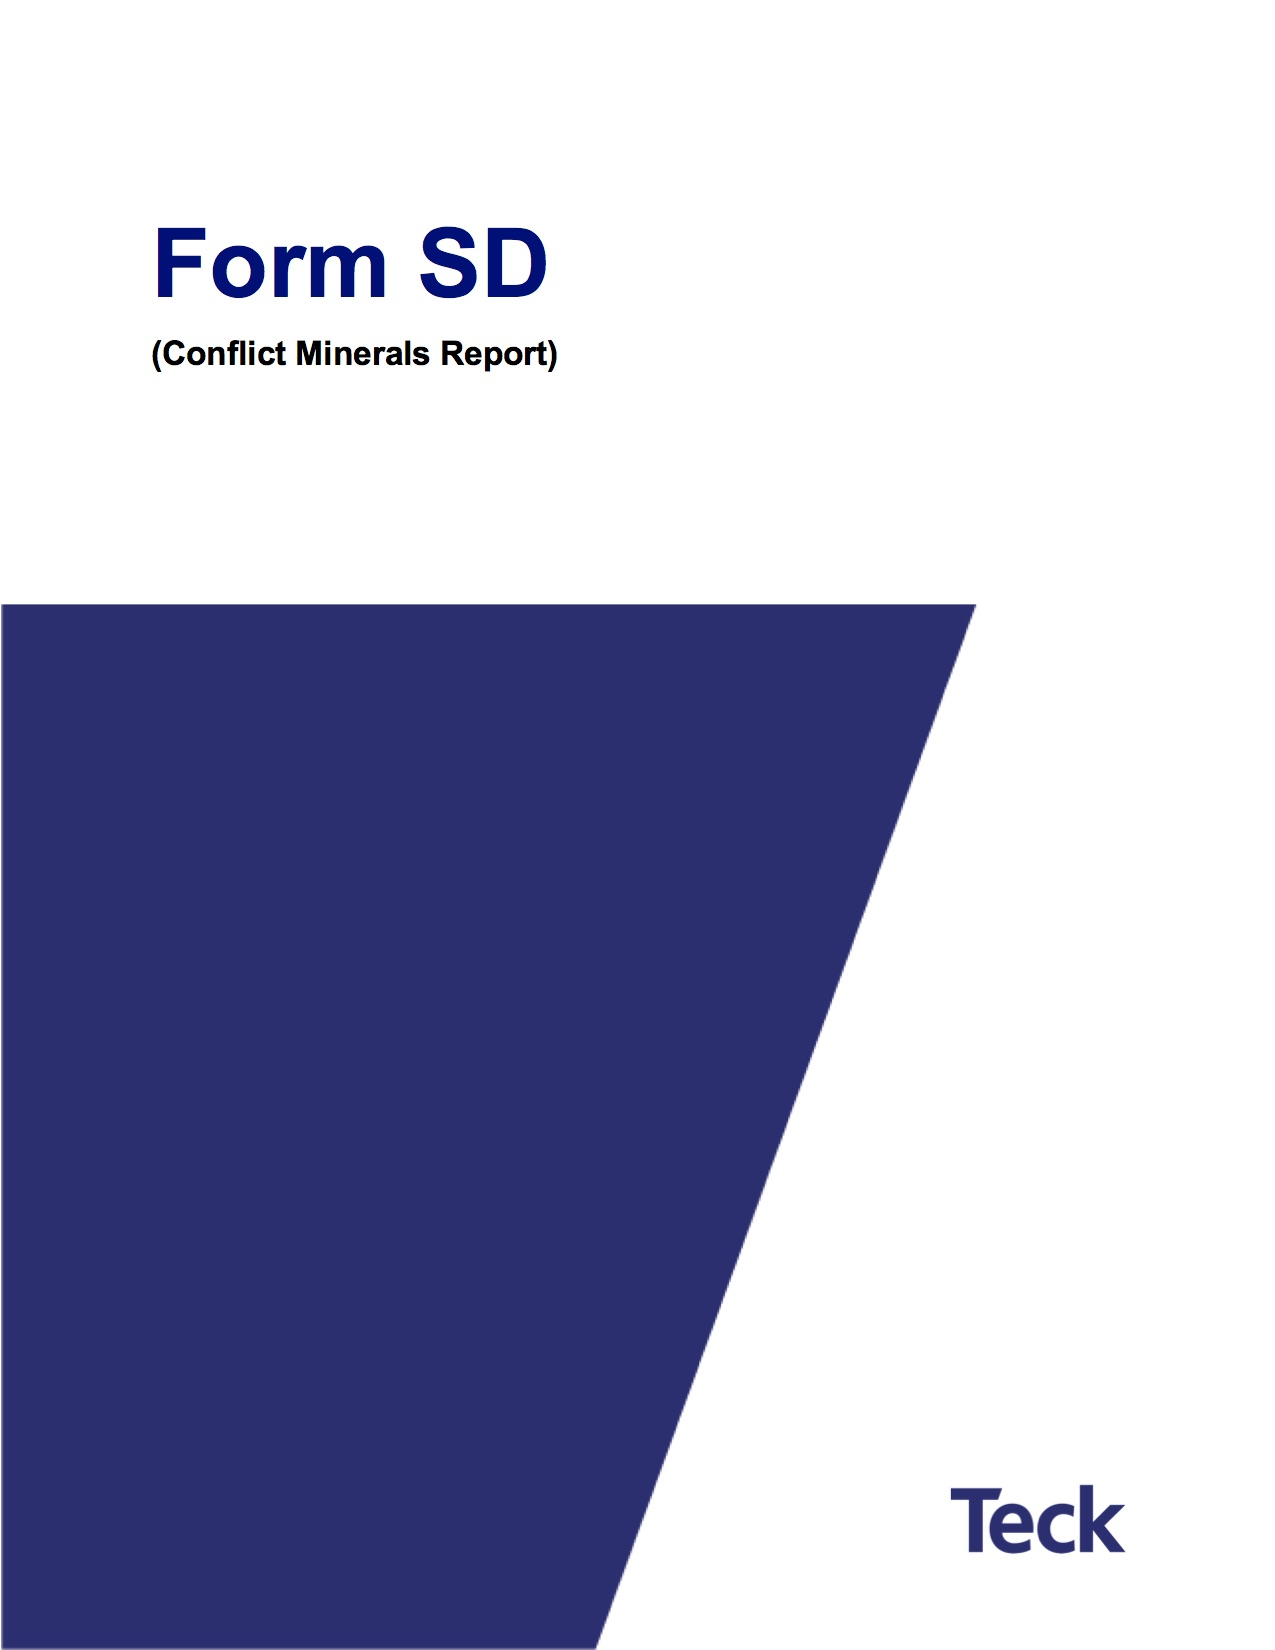 Form SD (Conflict Minerals Report)